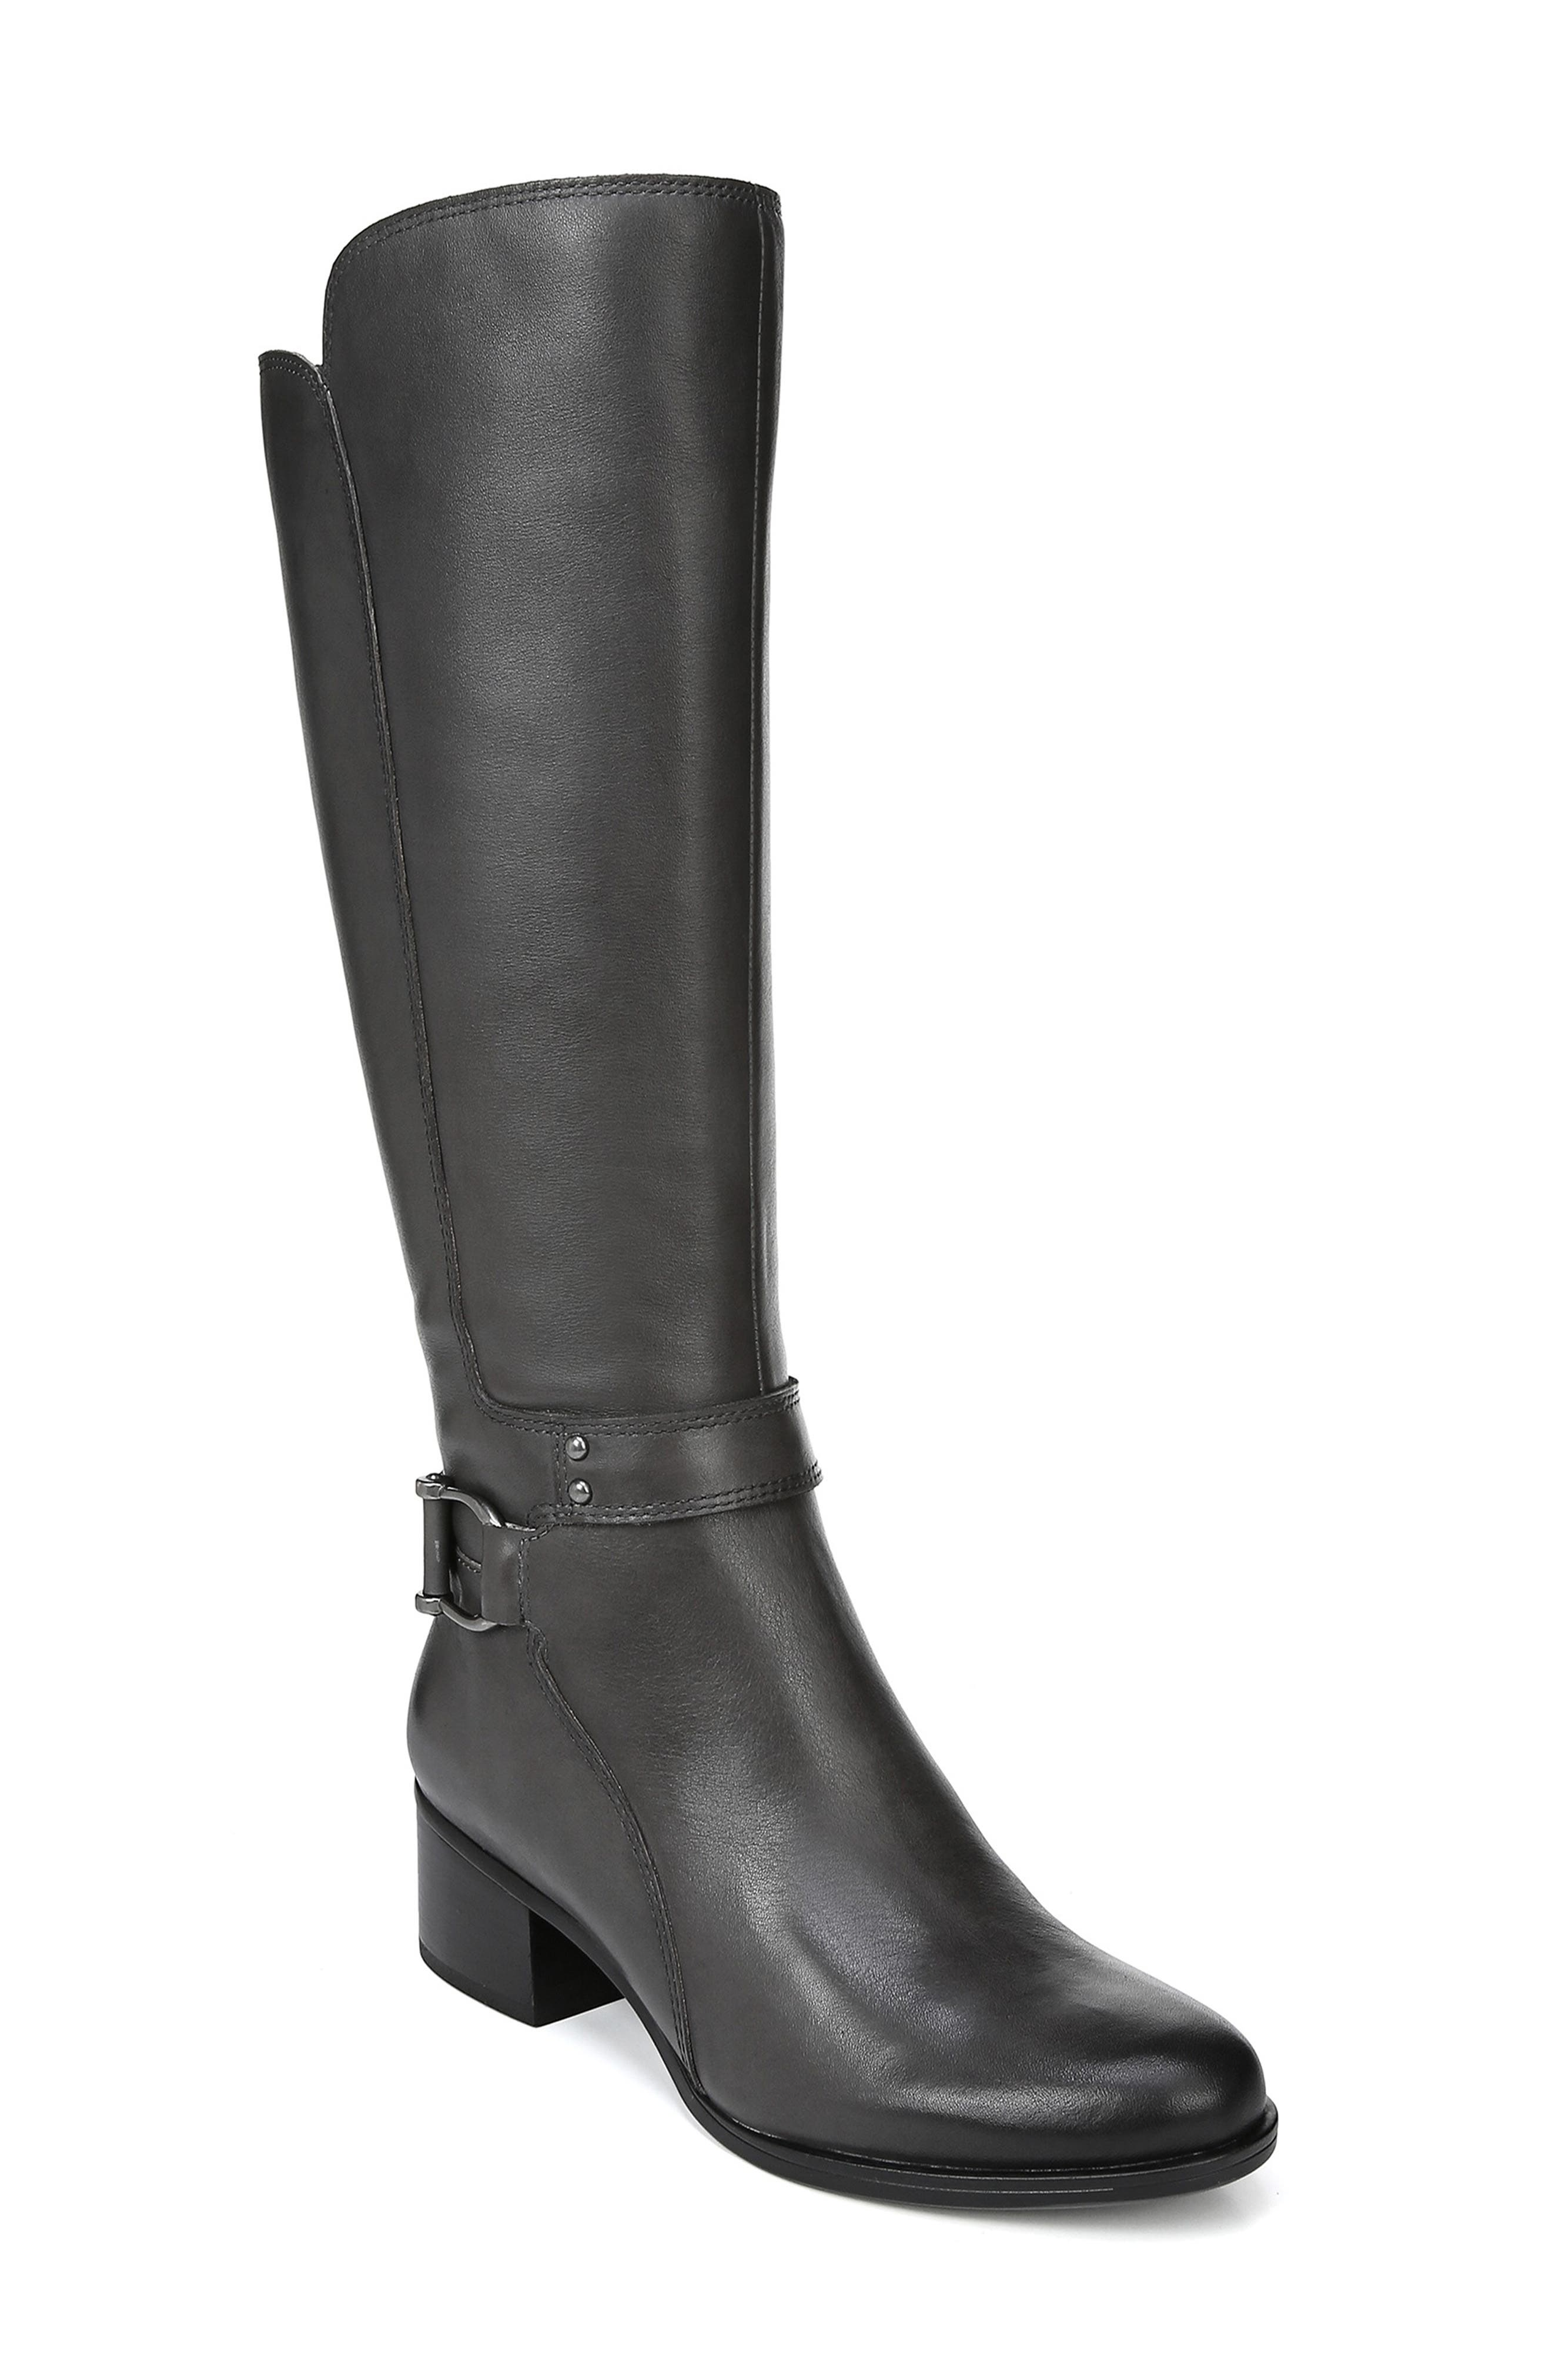 Dane Knee High Riding Boot,                         Main,                         color, GREY LEATHER